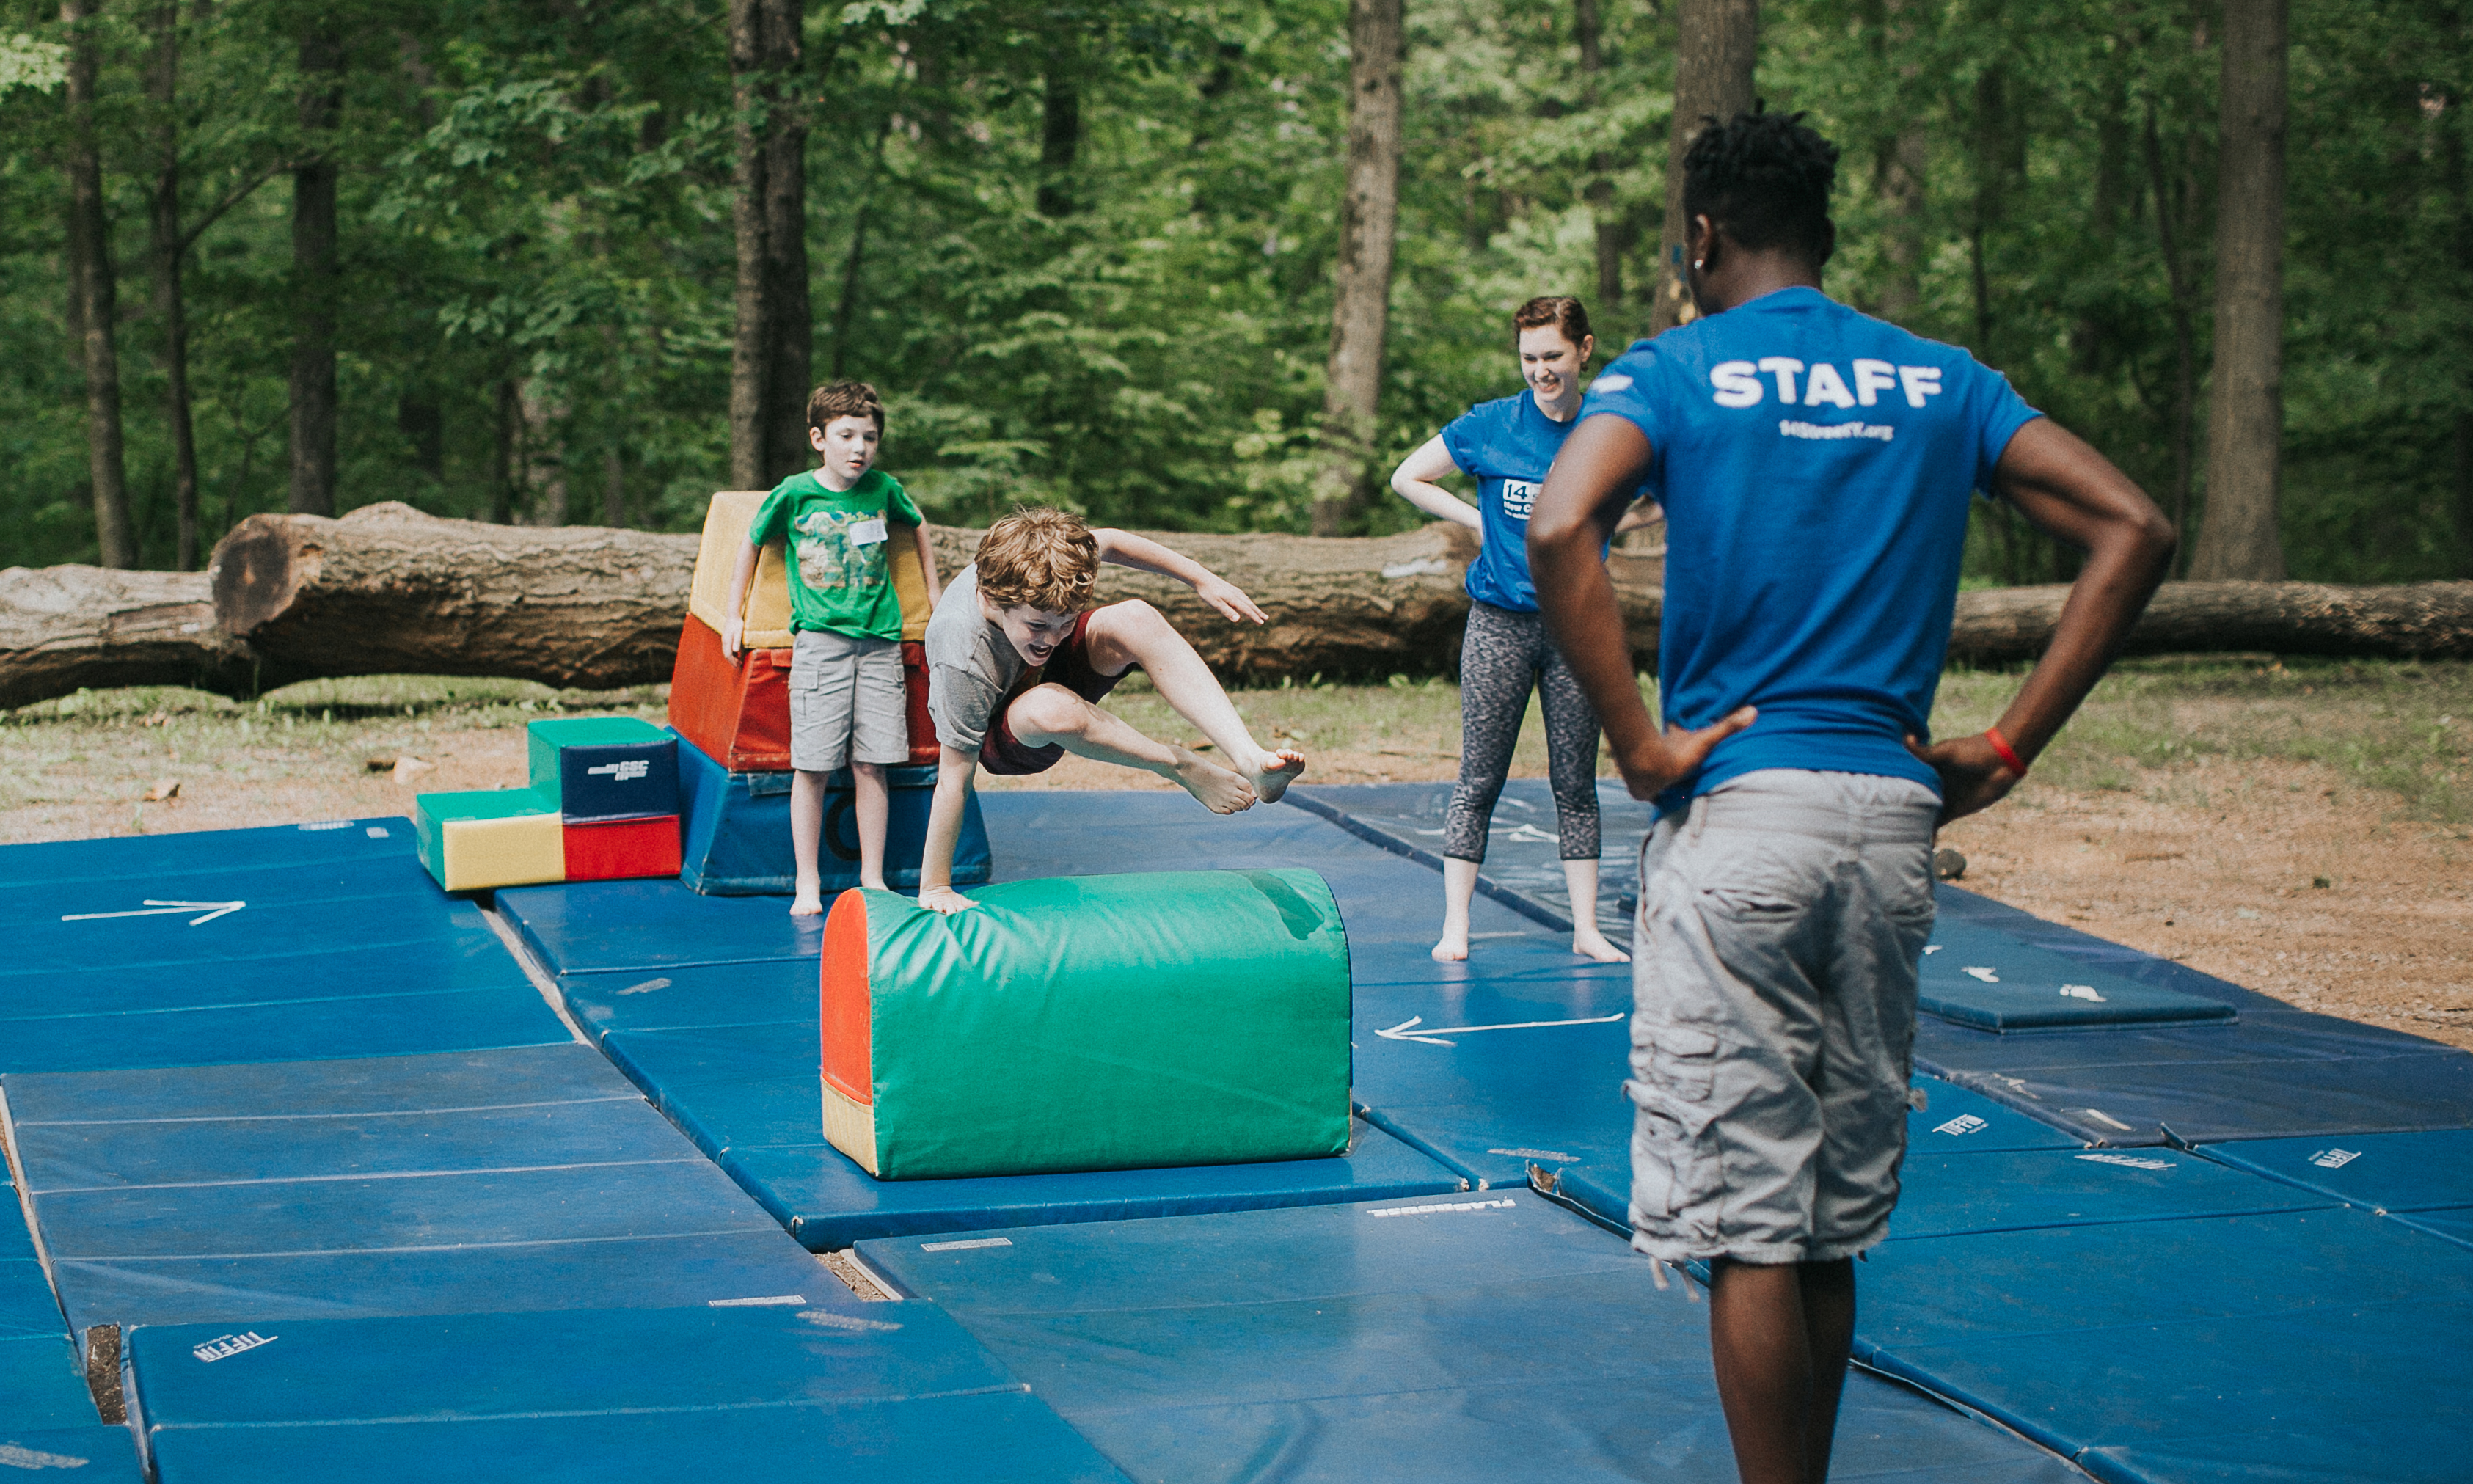 Gymnastics at camp